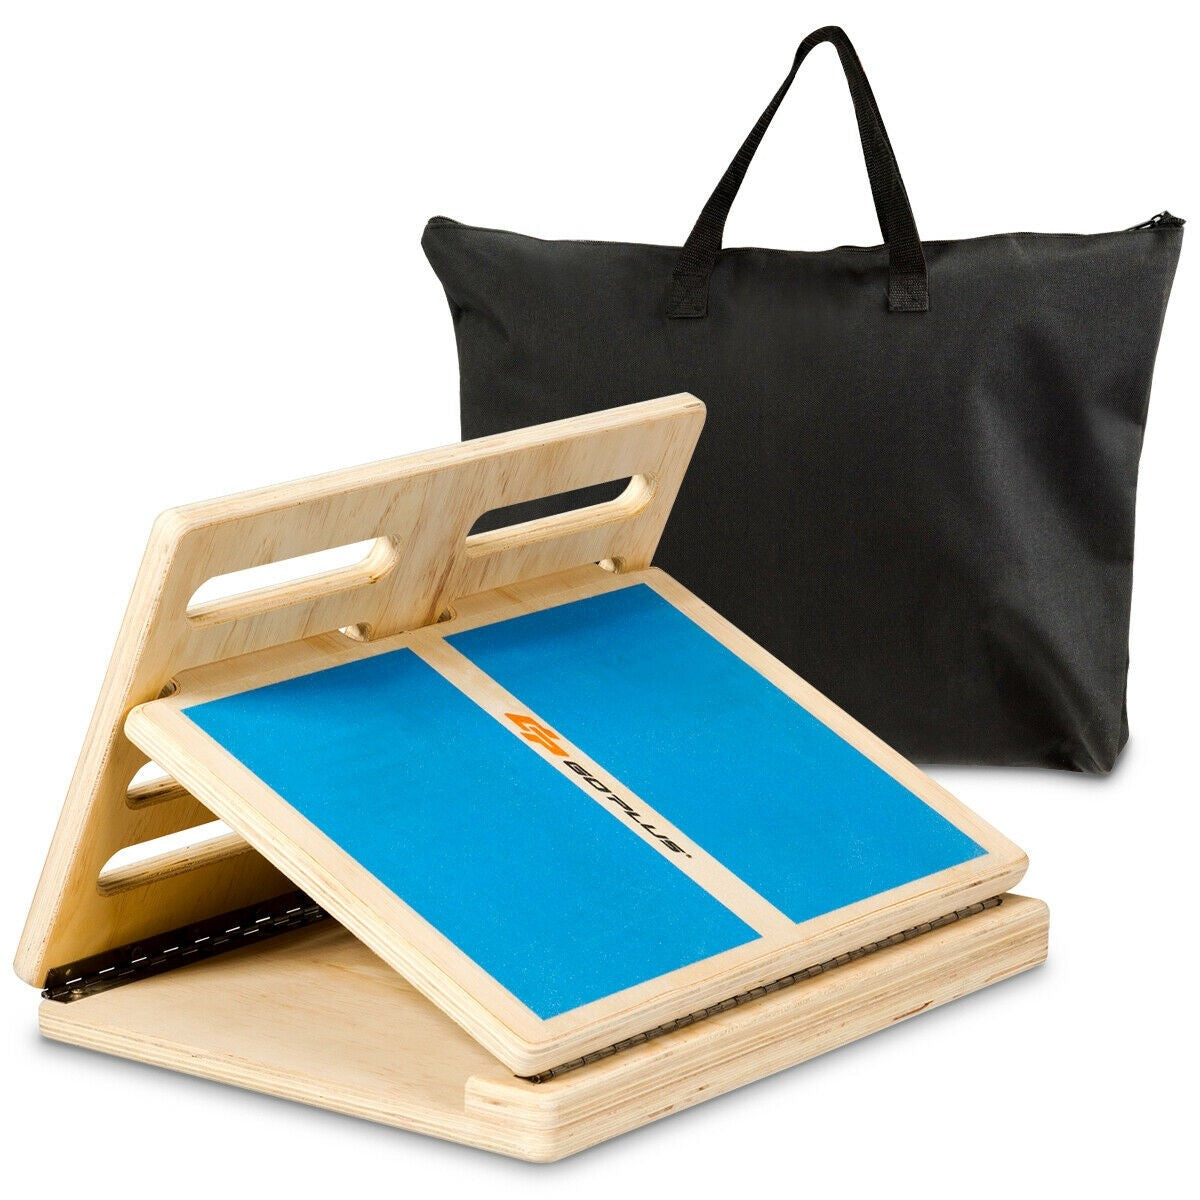 4 Level Adjustable Slant Wooden Board with Bag Uplift Active